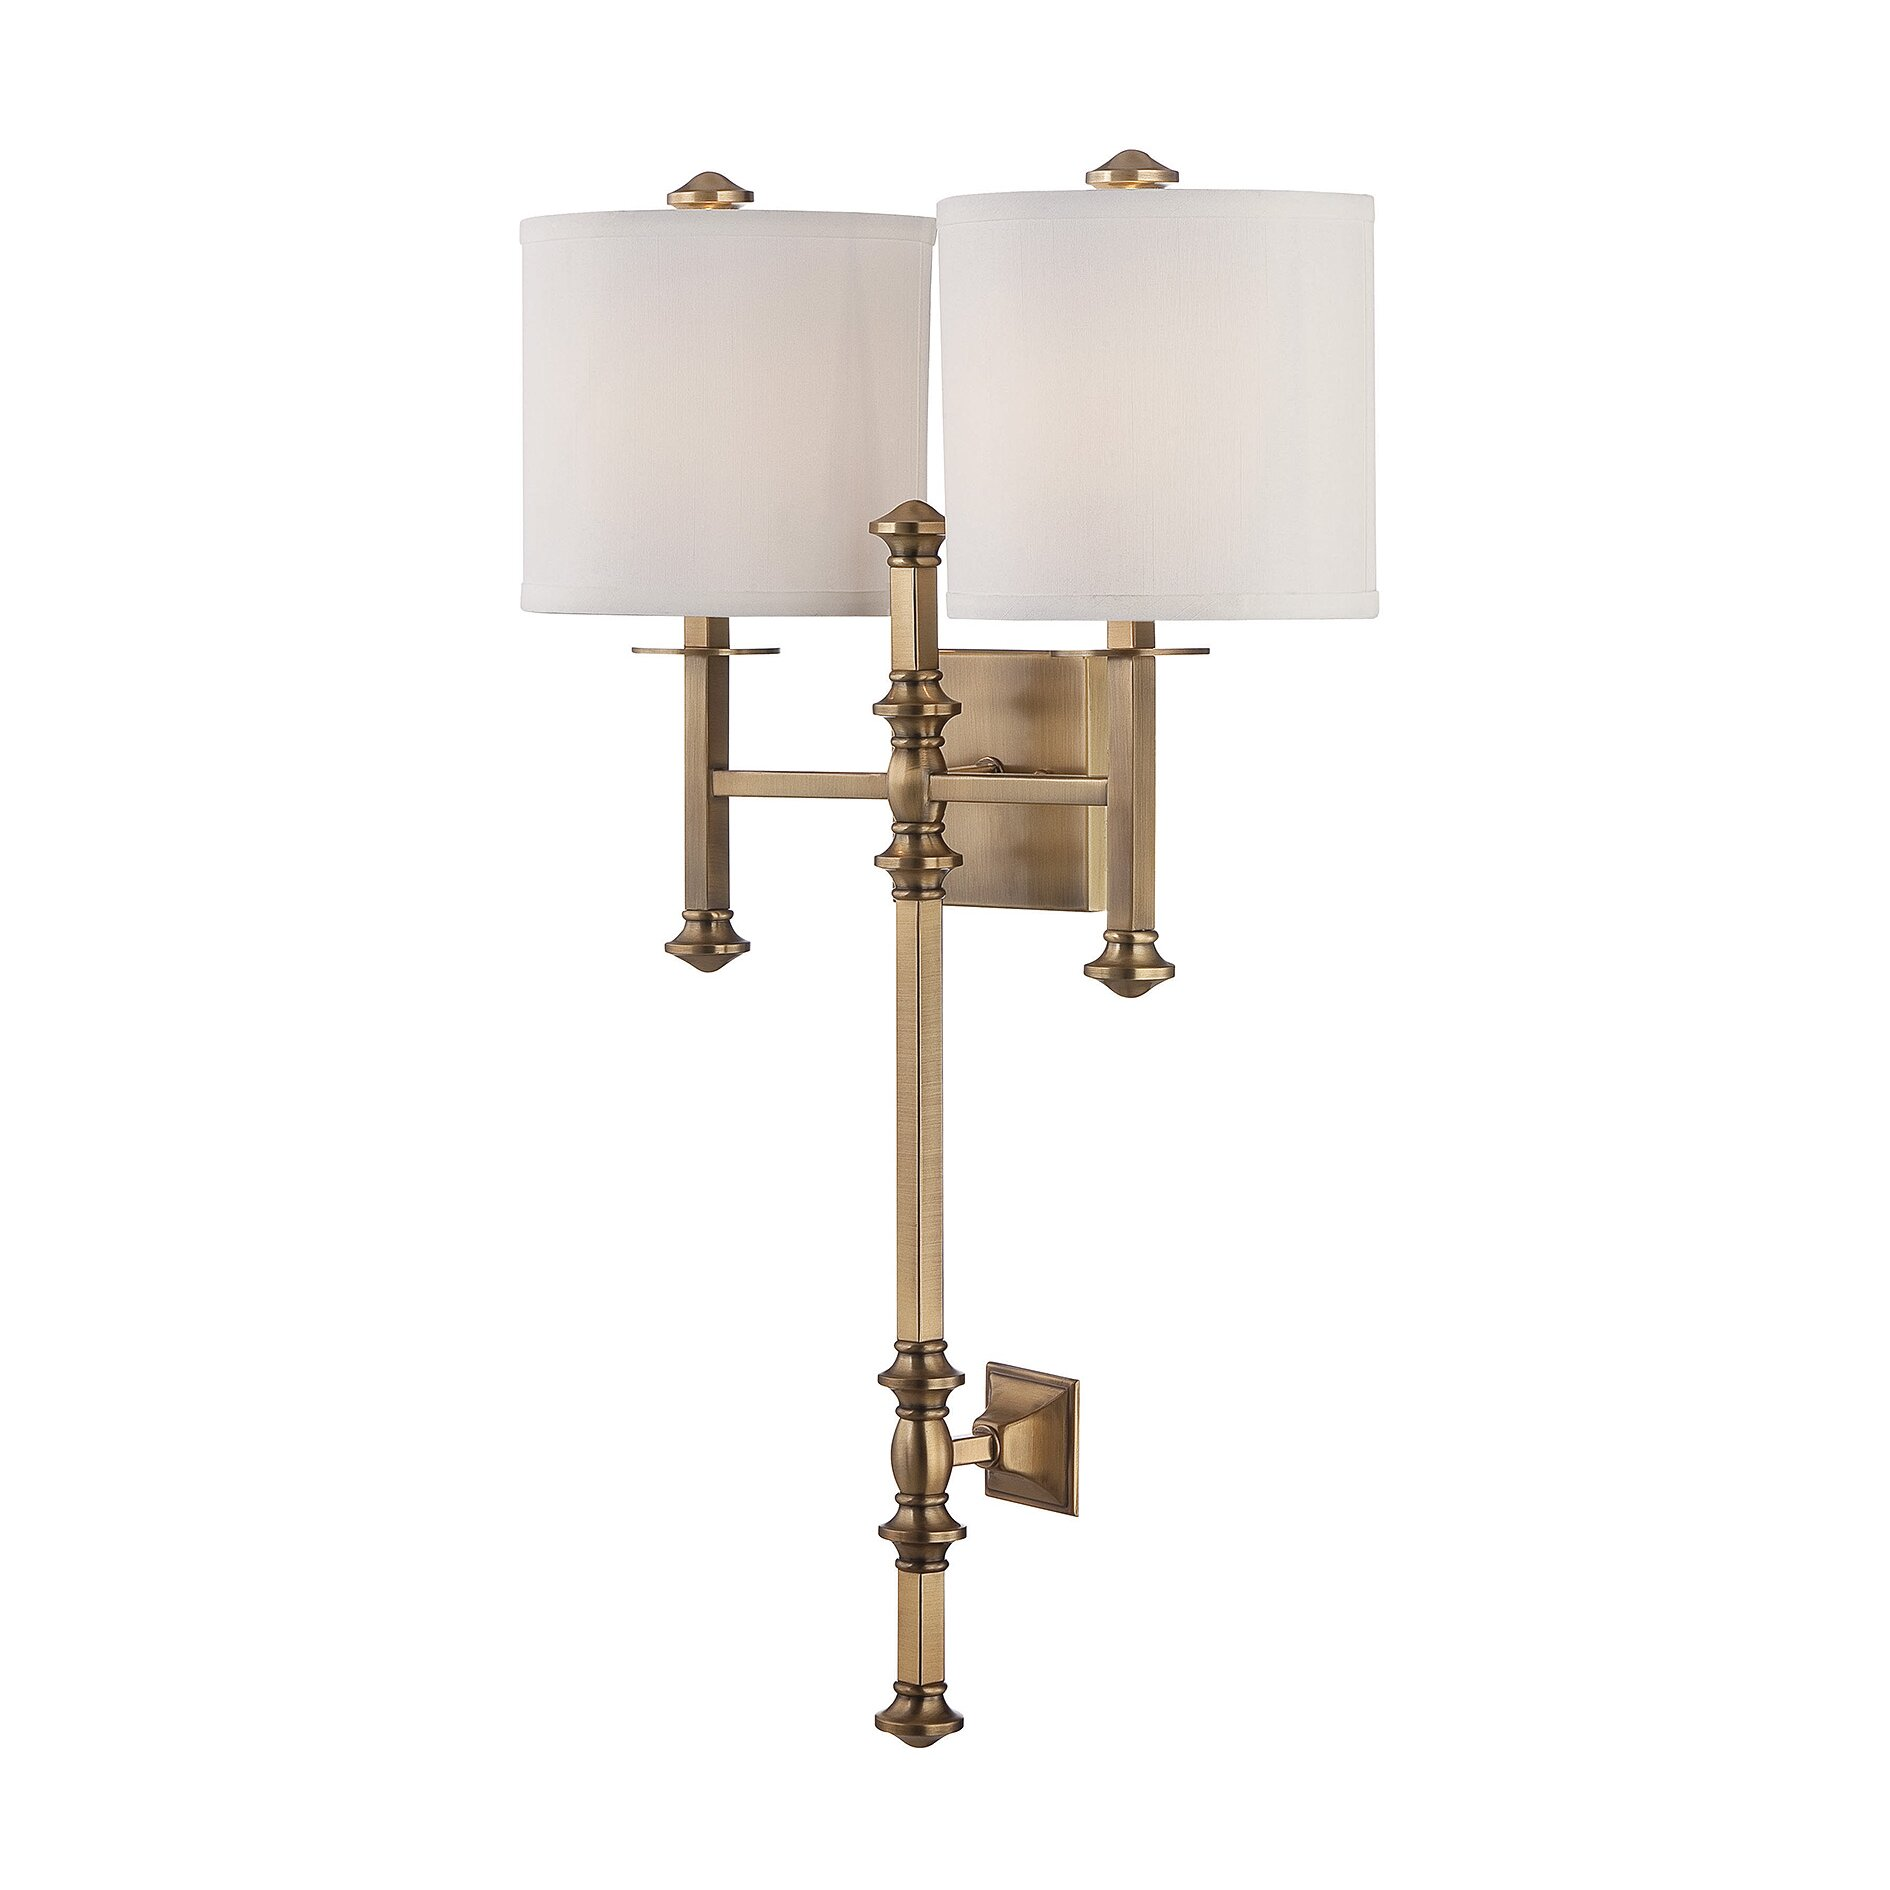 Wall Sconces 2 Lights : Savoy House Devon 2 Light Wall Sconce & Reviews Wayfair